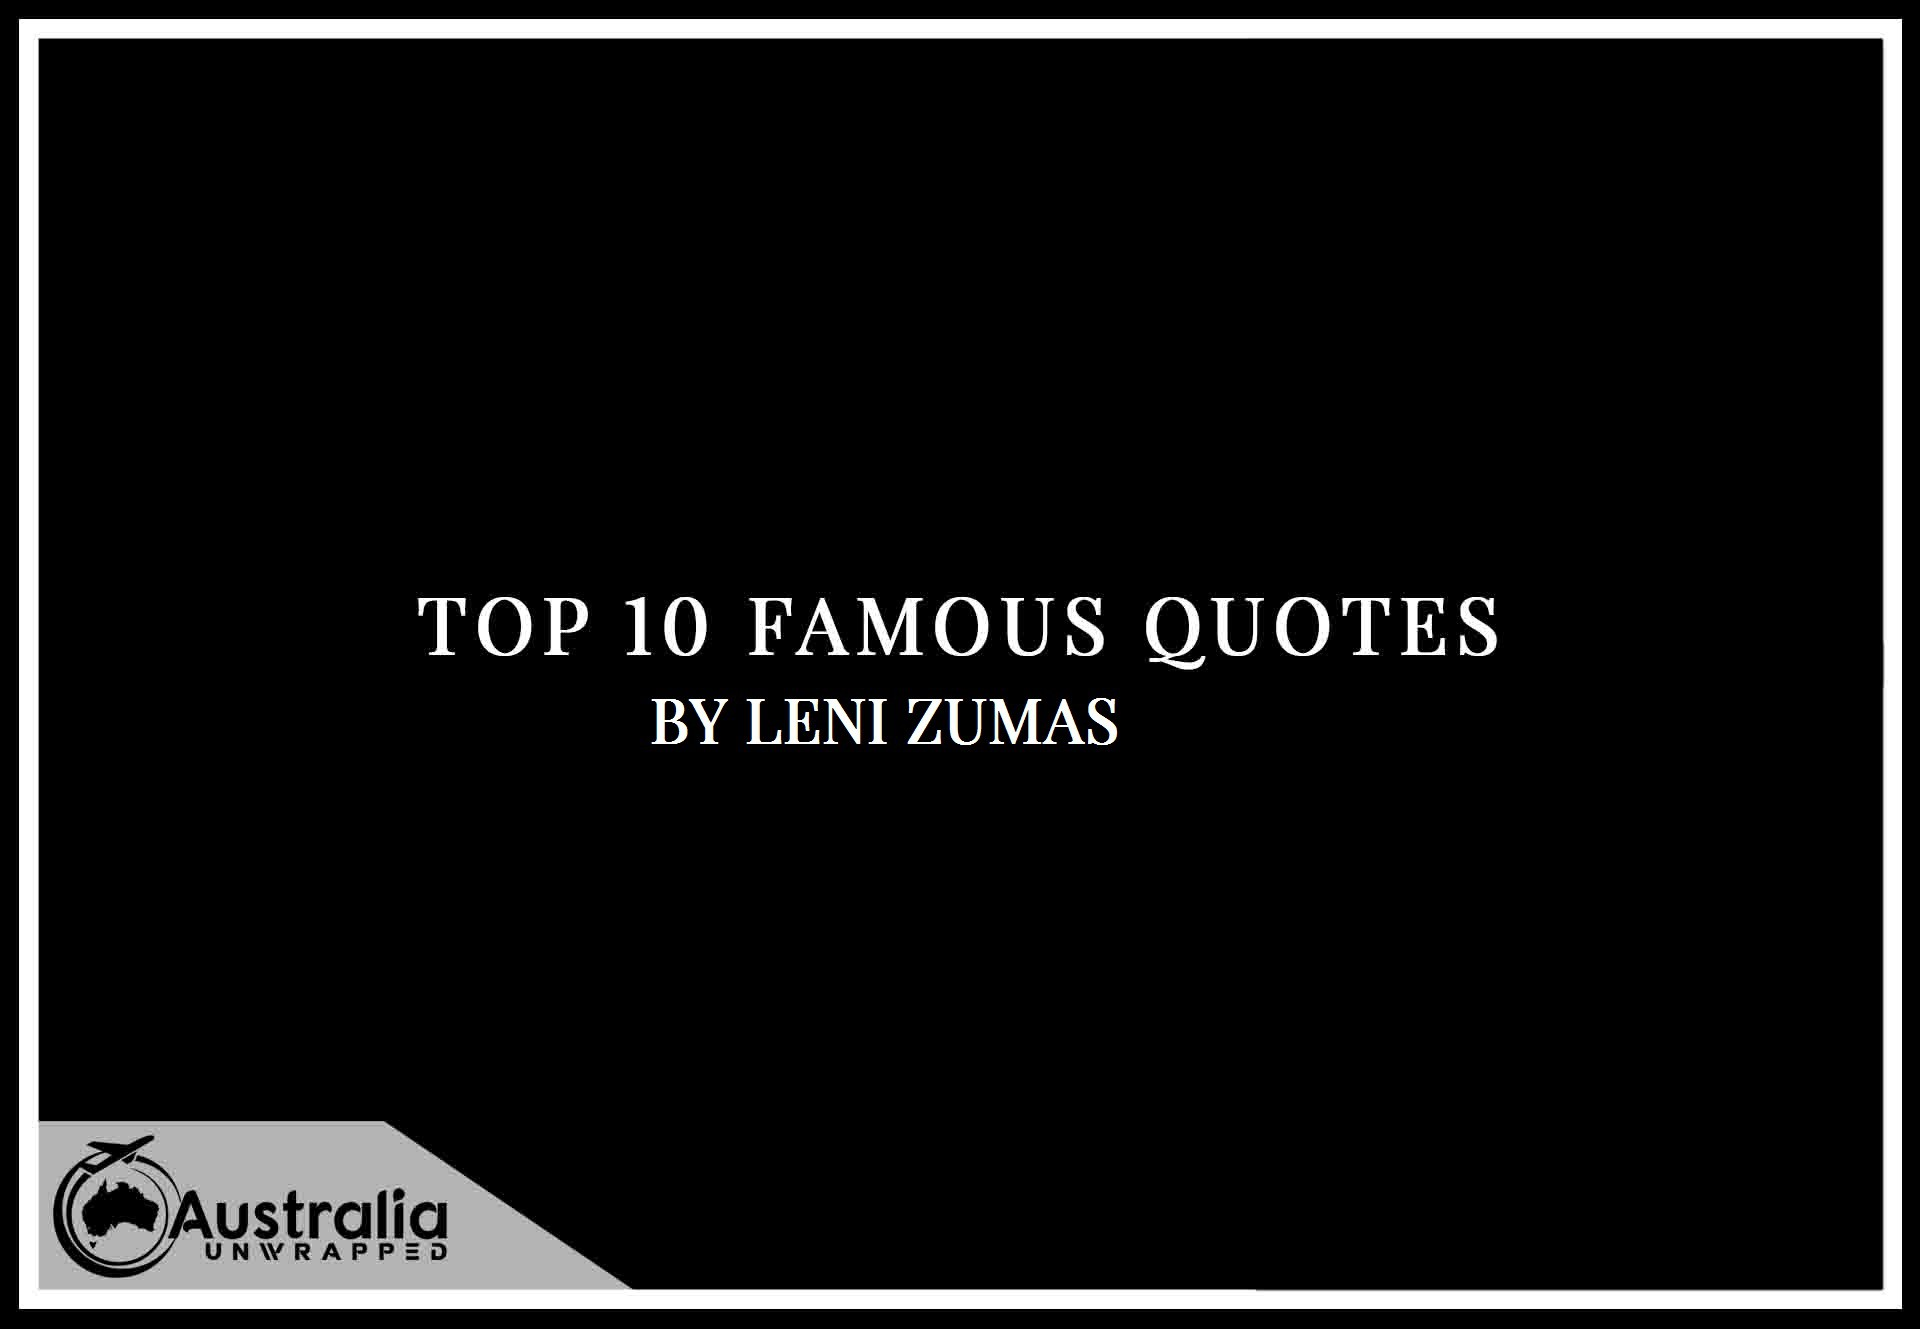 Leni Zumas's Top 10 Popular and Famous Quotes